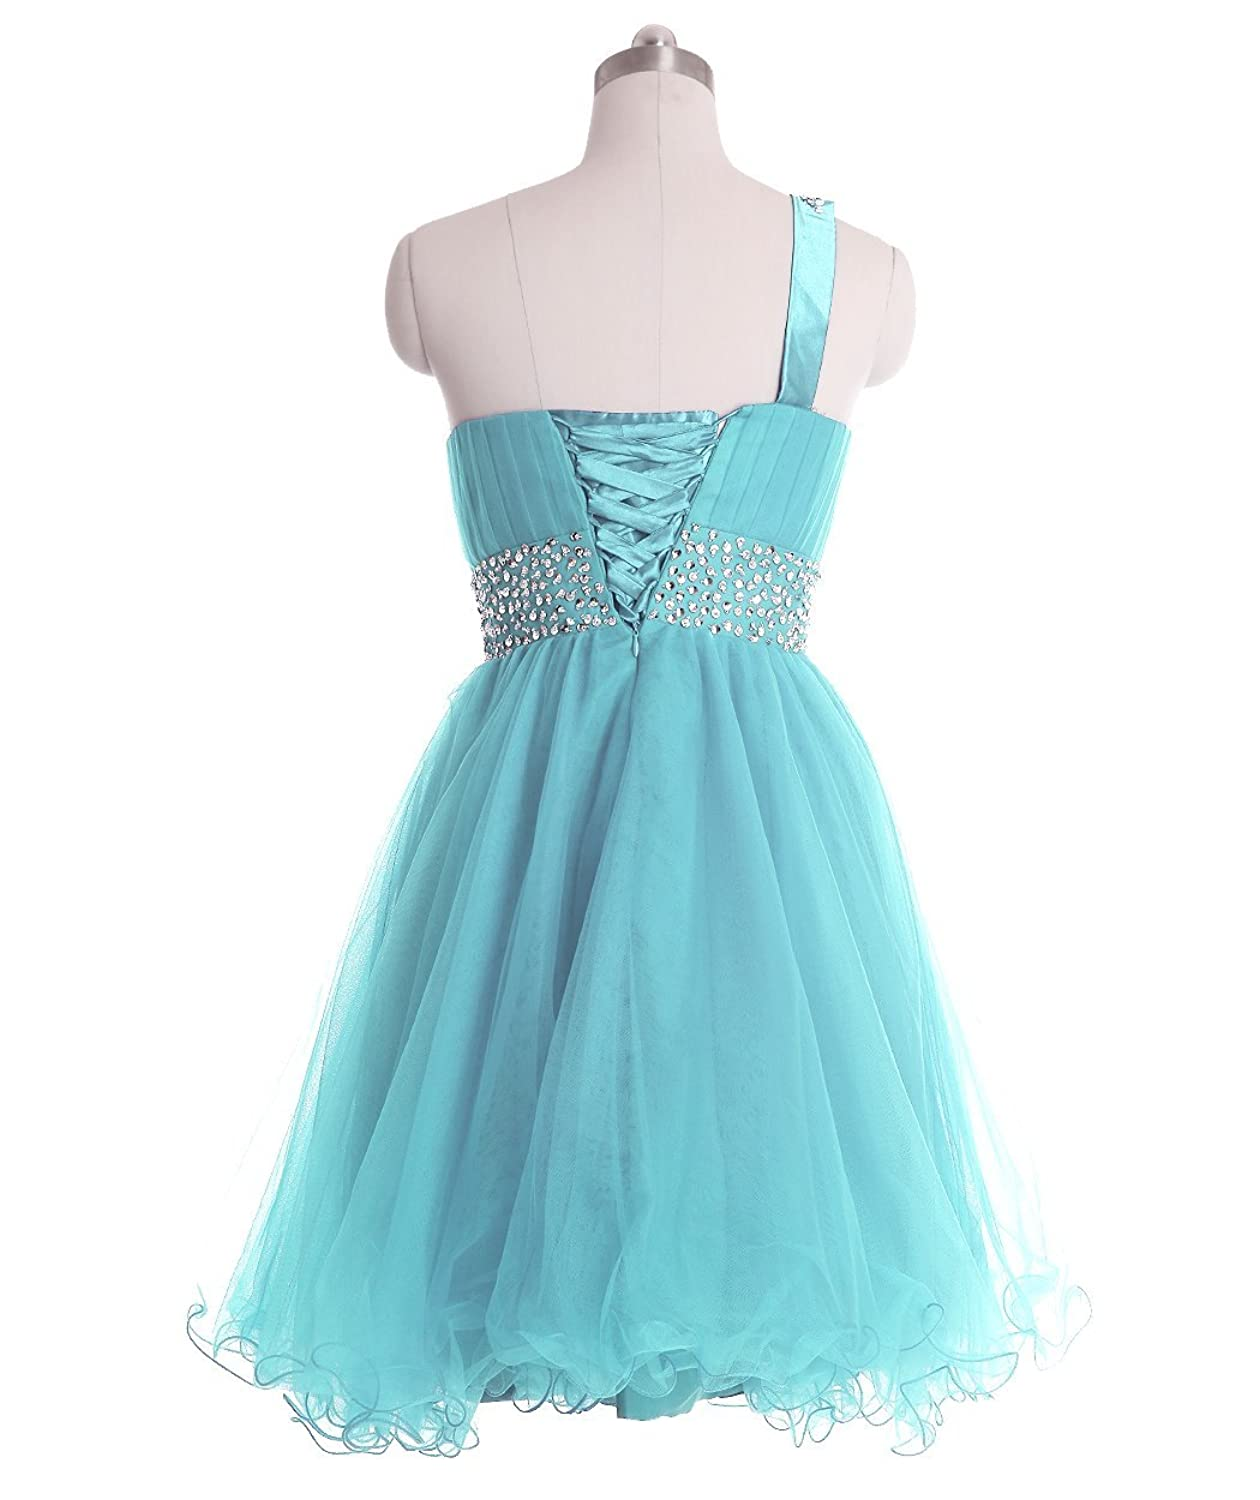 Amazon.com: FAIRY COUPLE One Shoulder Short Homecoming Dress Beaded ...